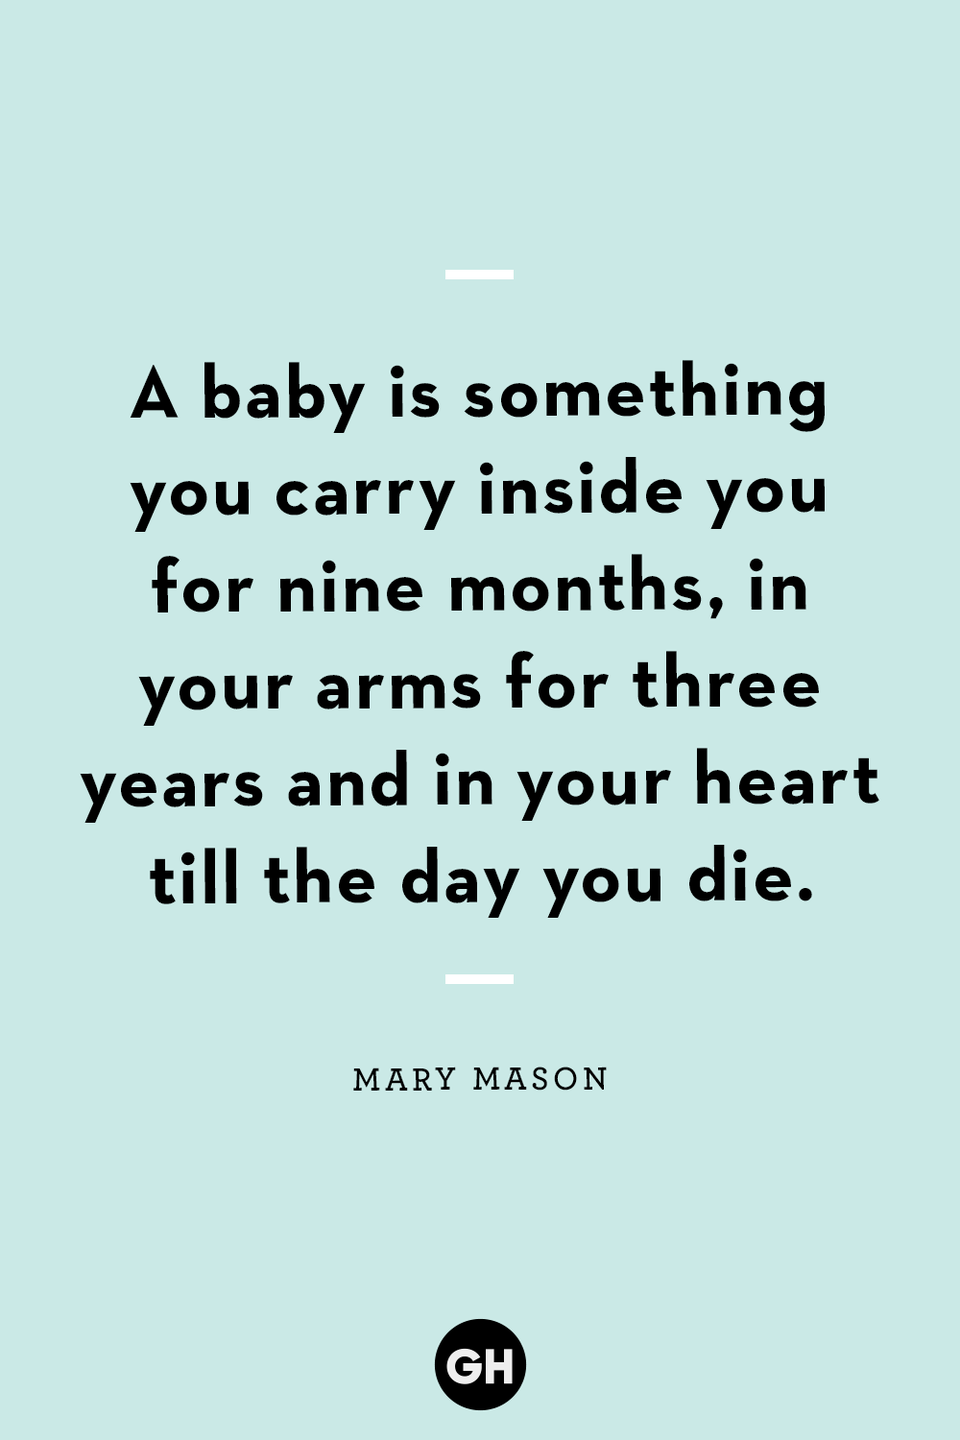 <p>A baby is something you carry inside you for nine months, in your arms for three years and in your heart till the day you die.</p>